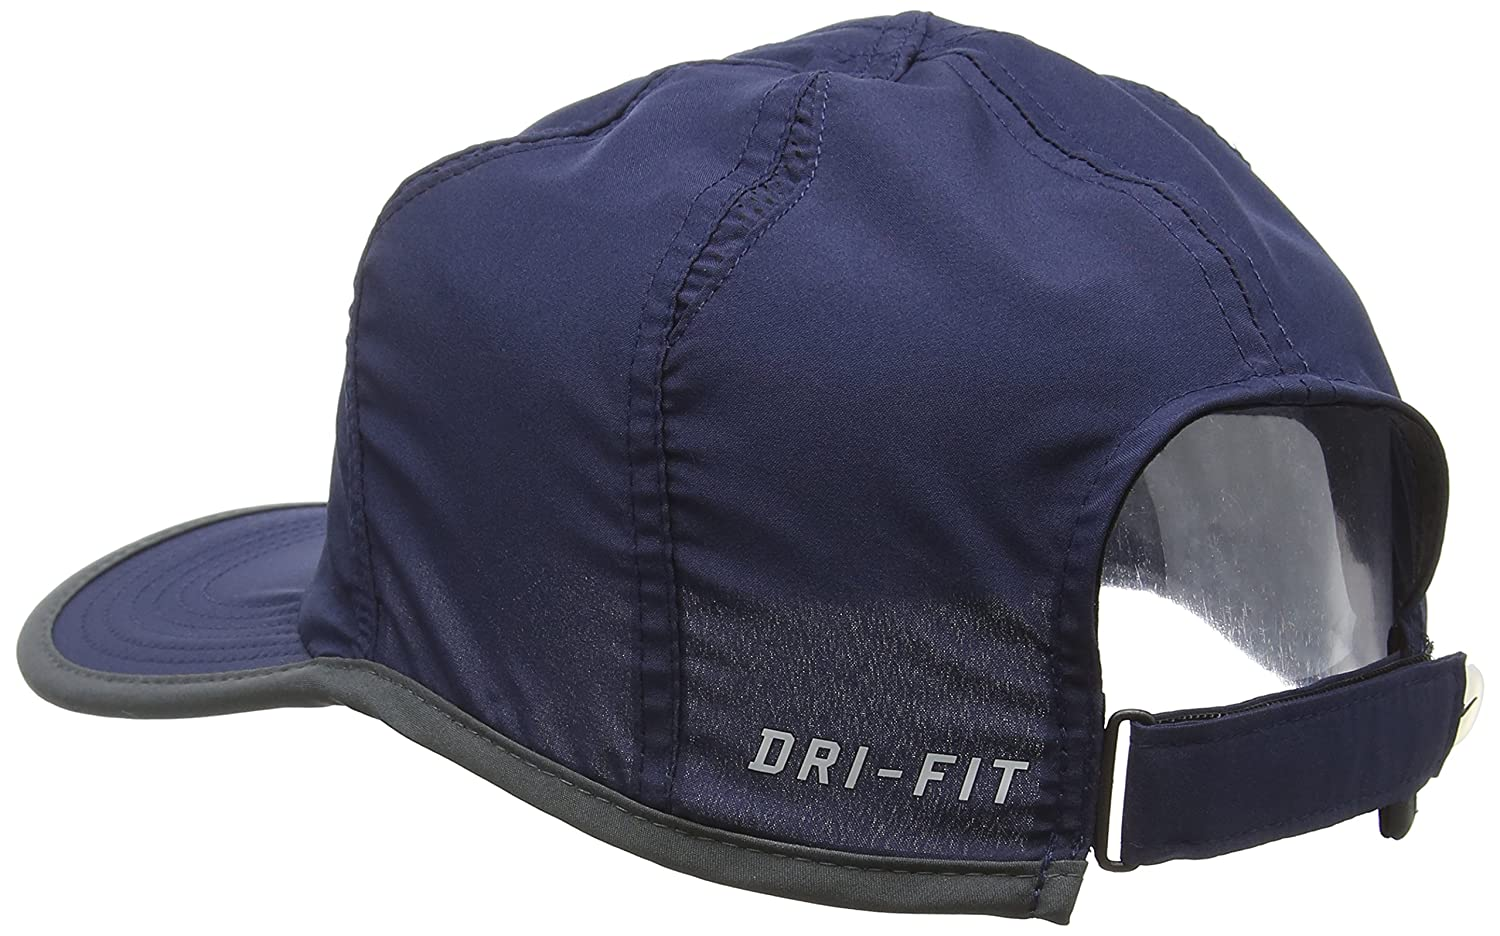 performance sportswear shoes for cheap get new NIKE FEATHER LIGHT HAT (version 2.0) ADULT UNISEX -NAVY